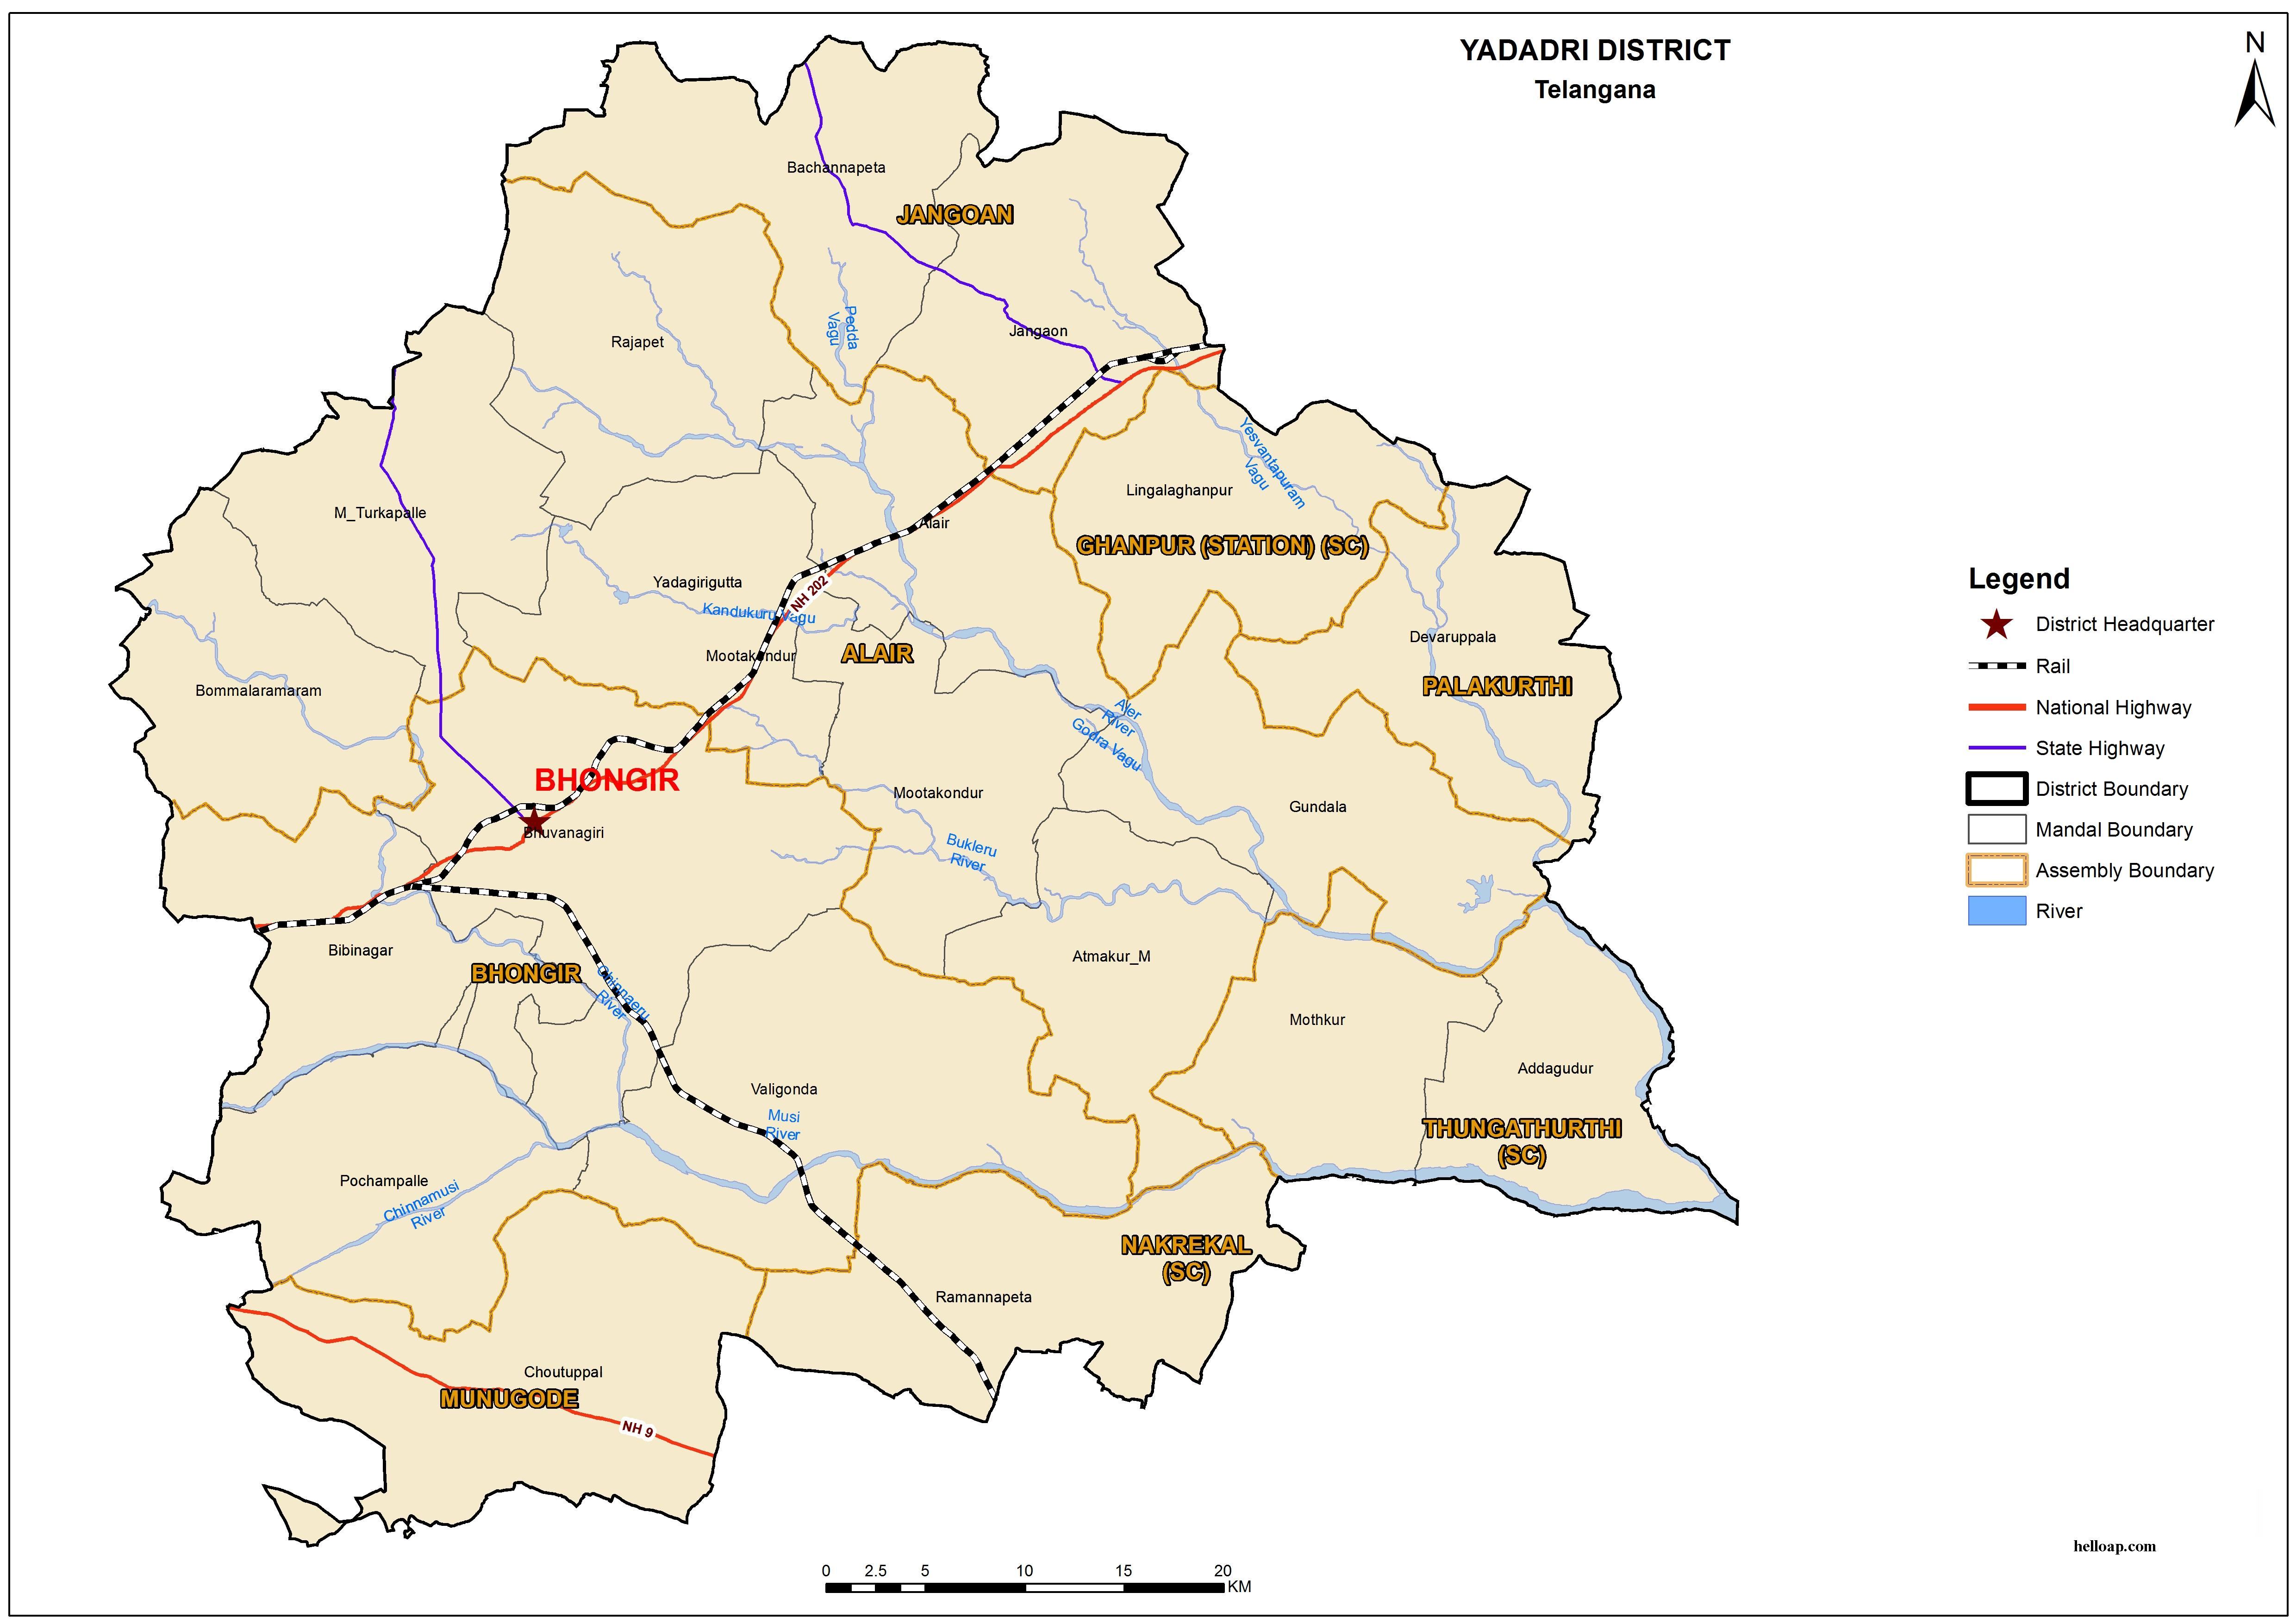 Yadadri New District Map, Mandals and Revenue Divisions in